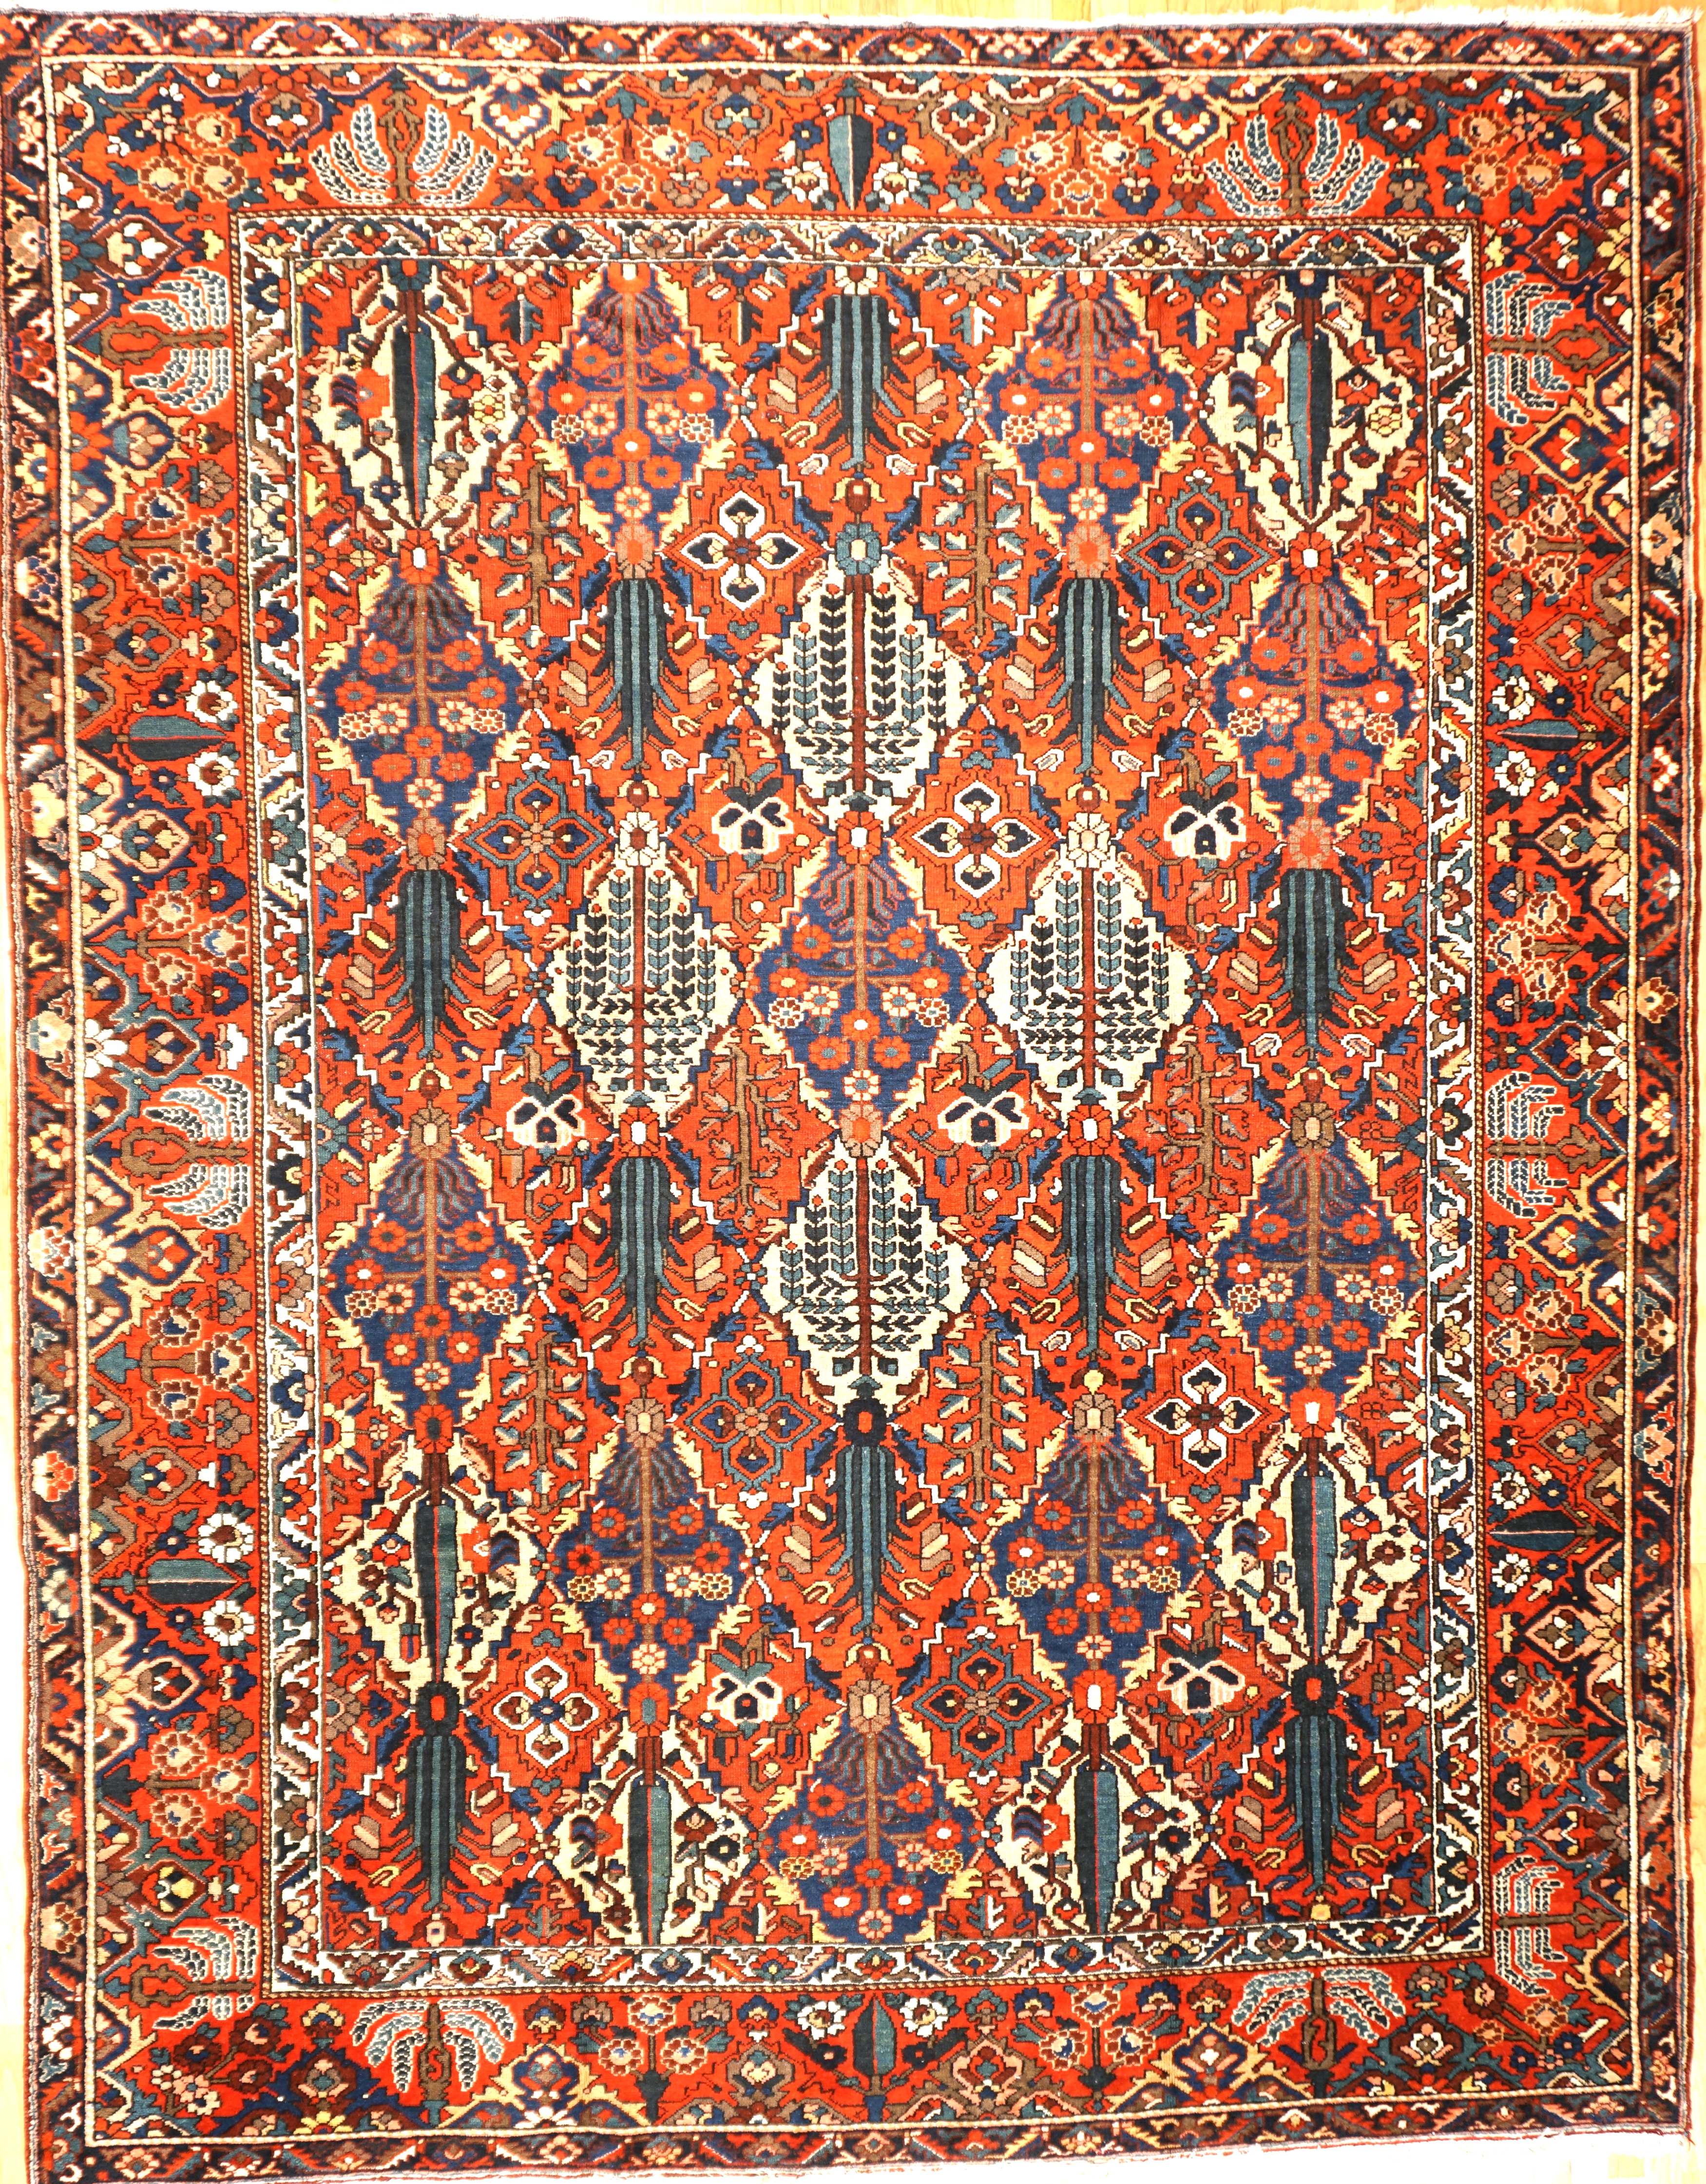 rug new ny dealers more york gallery persian about